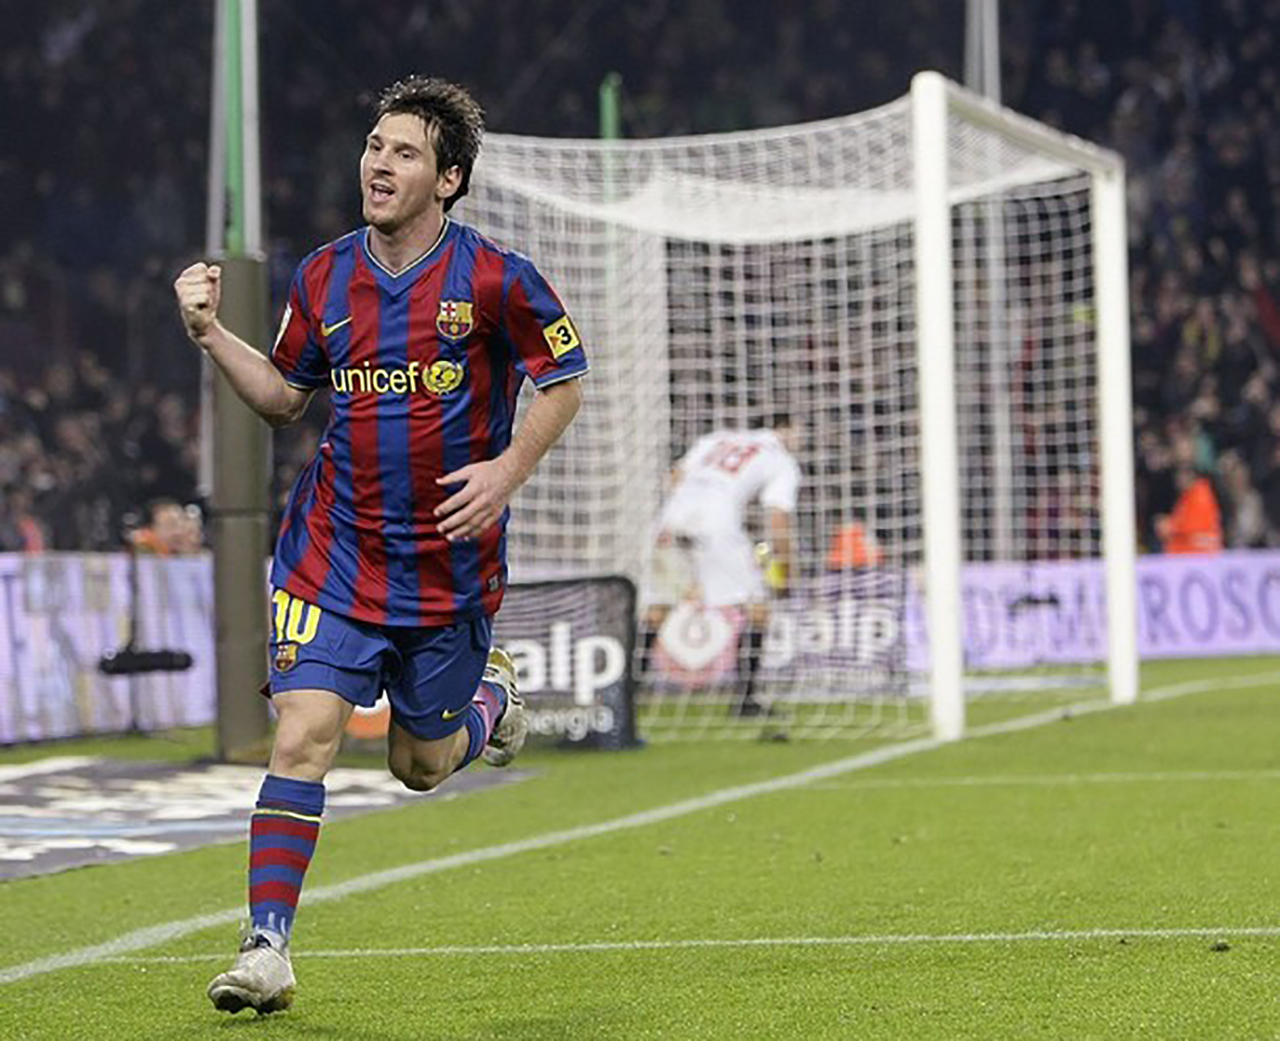 Lionel Messi Celebrates Goal During FC Barcelona Match